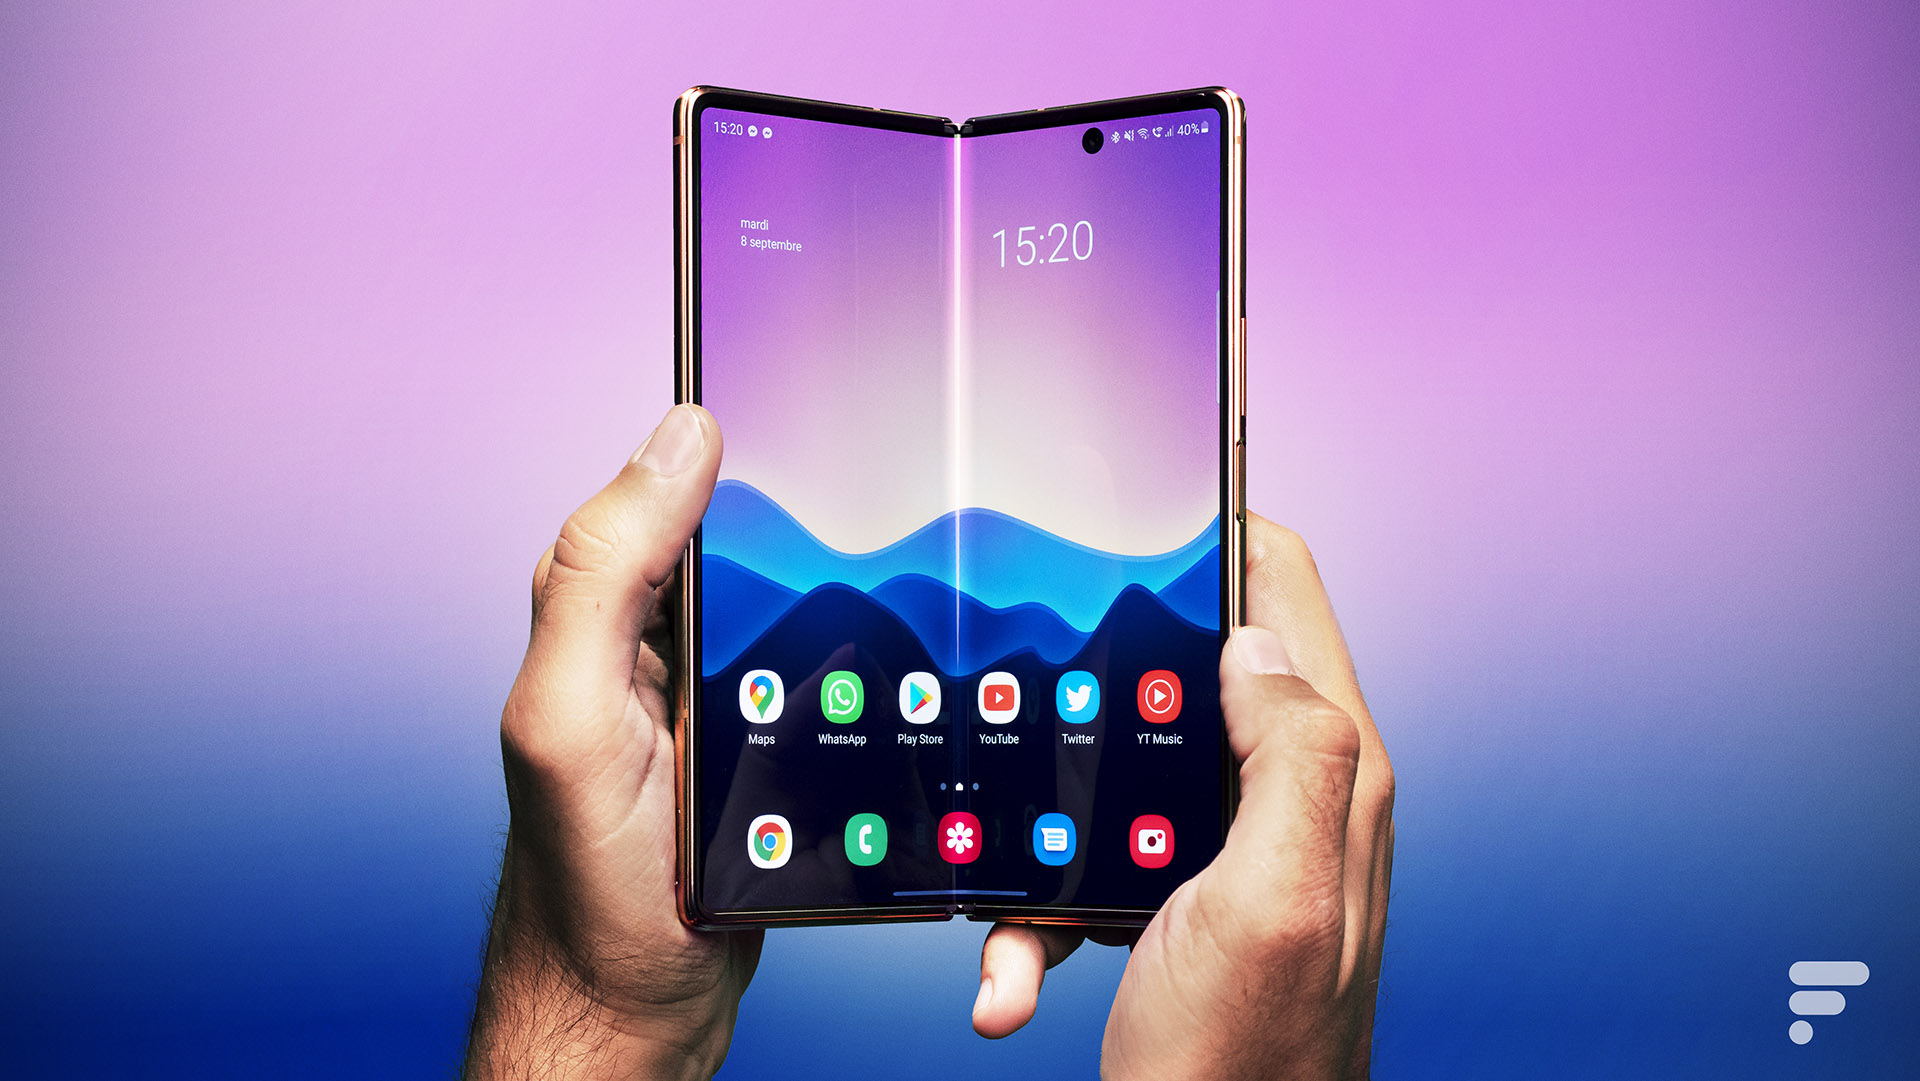 https://images.frandroid.com/wp-content/uploads/2020/09/samsung-galaxy-z-fold-2-ouverture.jpg